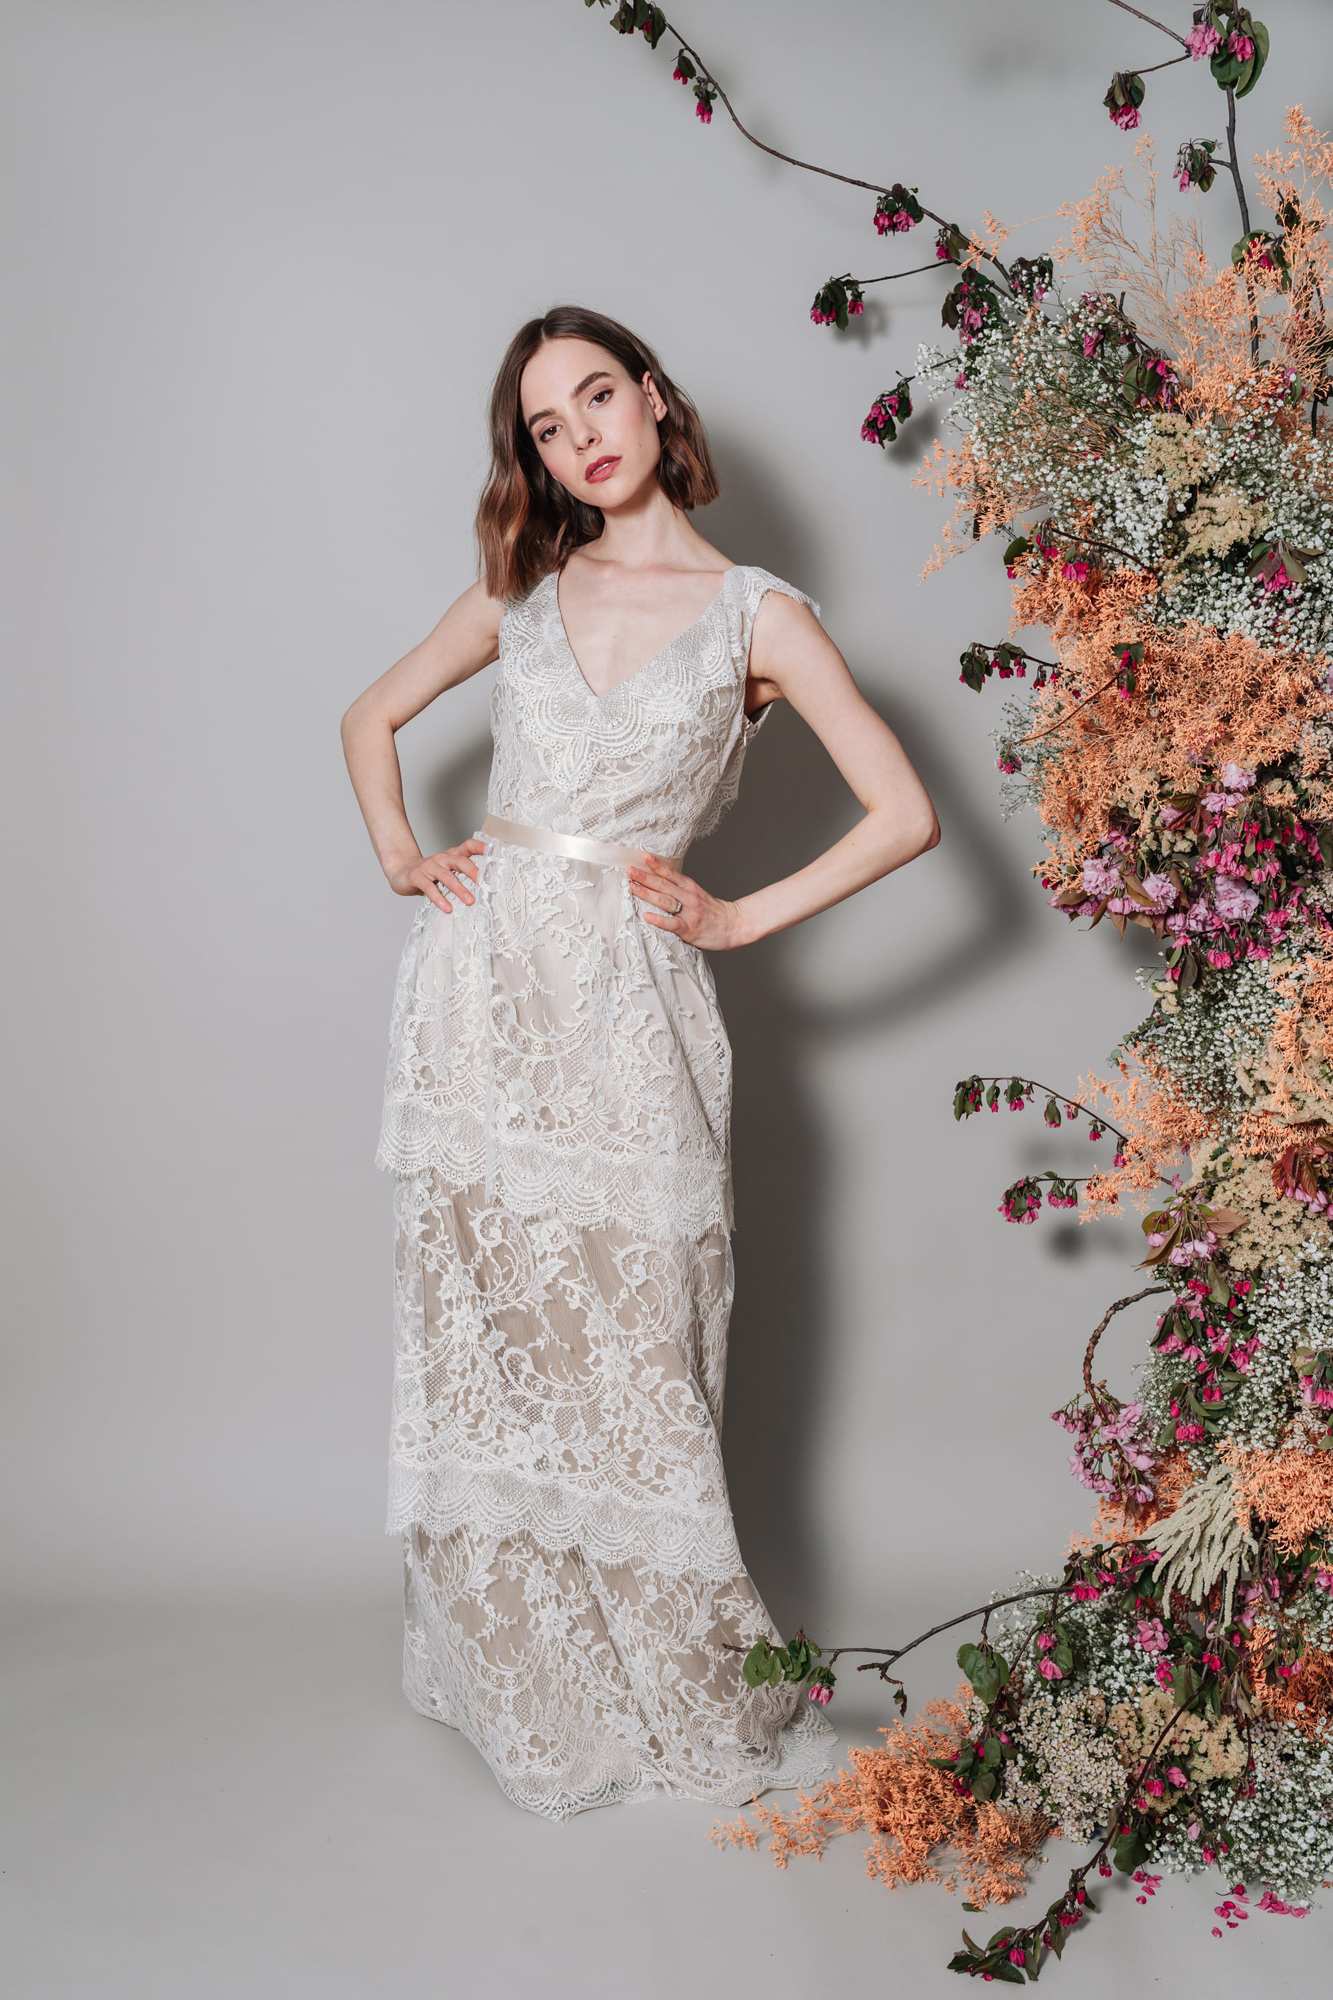 Kate-Beaumont-Sheffield-Wild-Lupin-Bohemian-Lace-Wedding-Gown-Tiered-Skirt-4.jpg